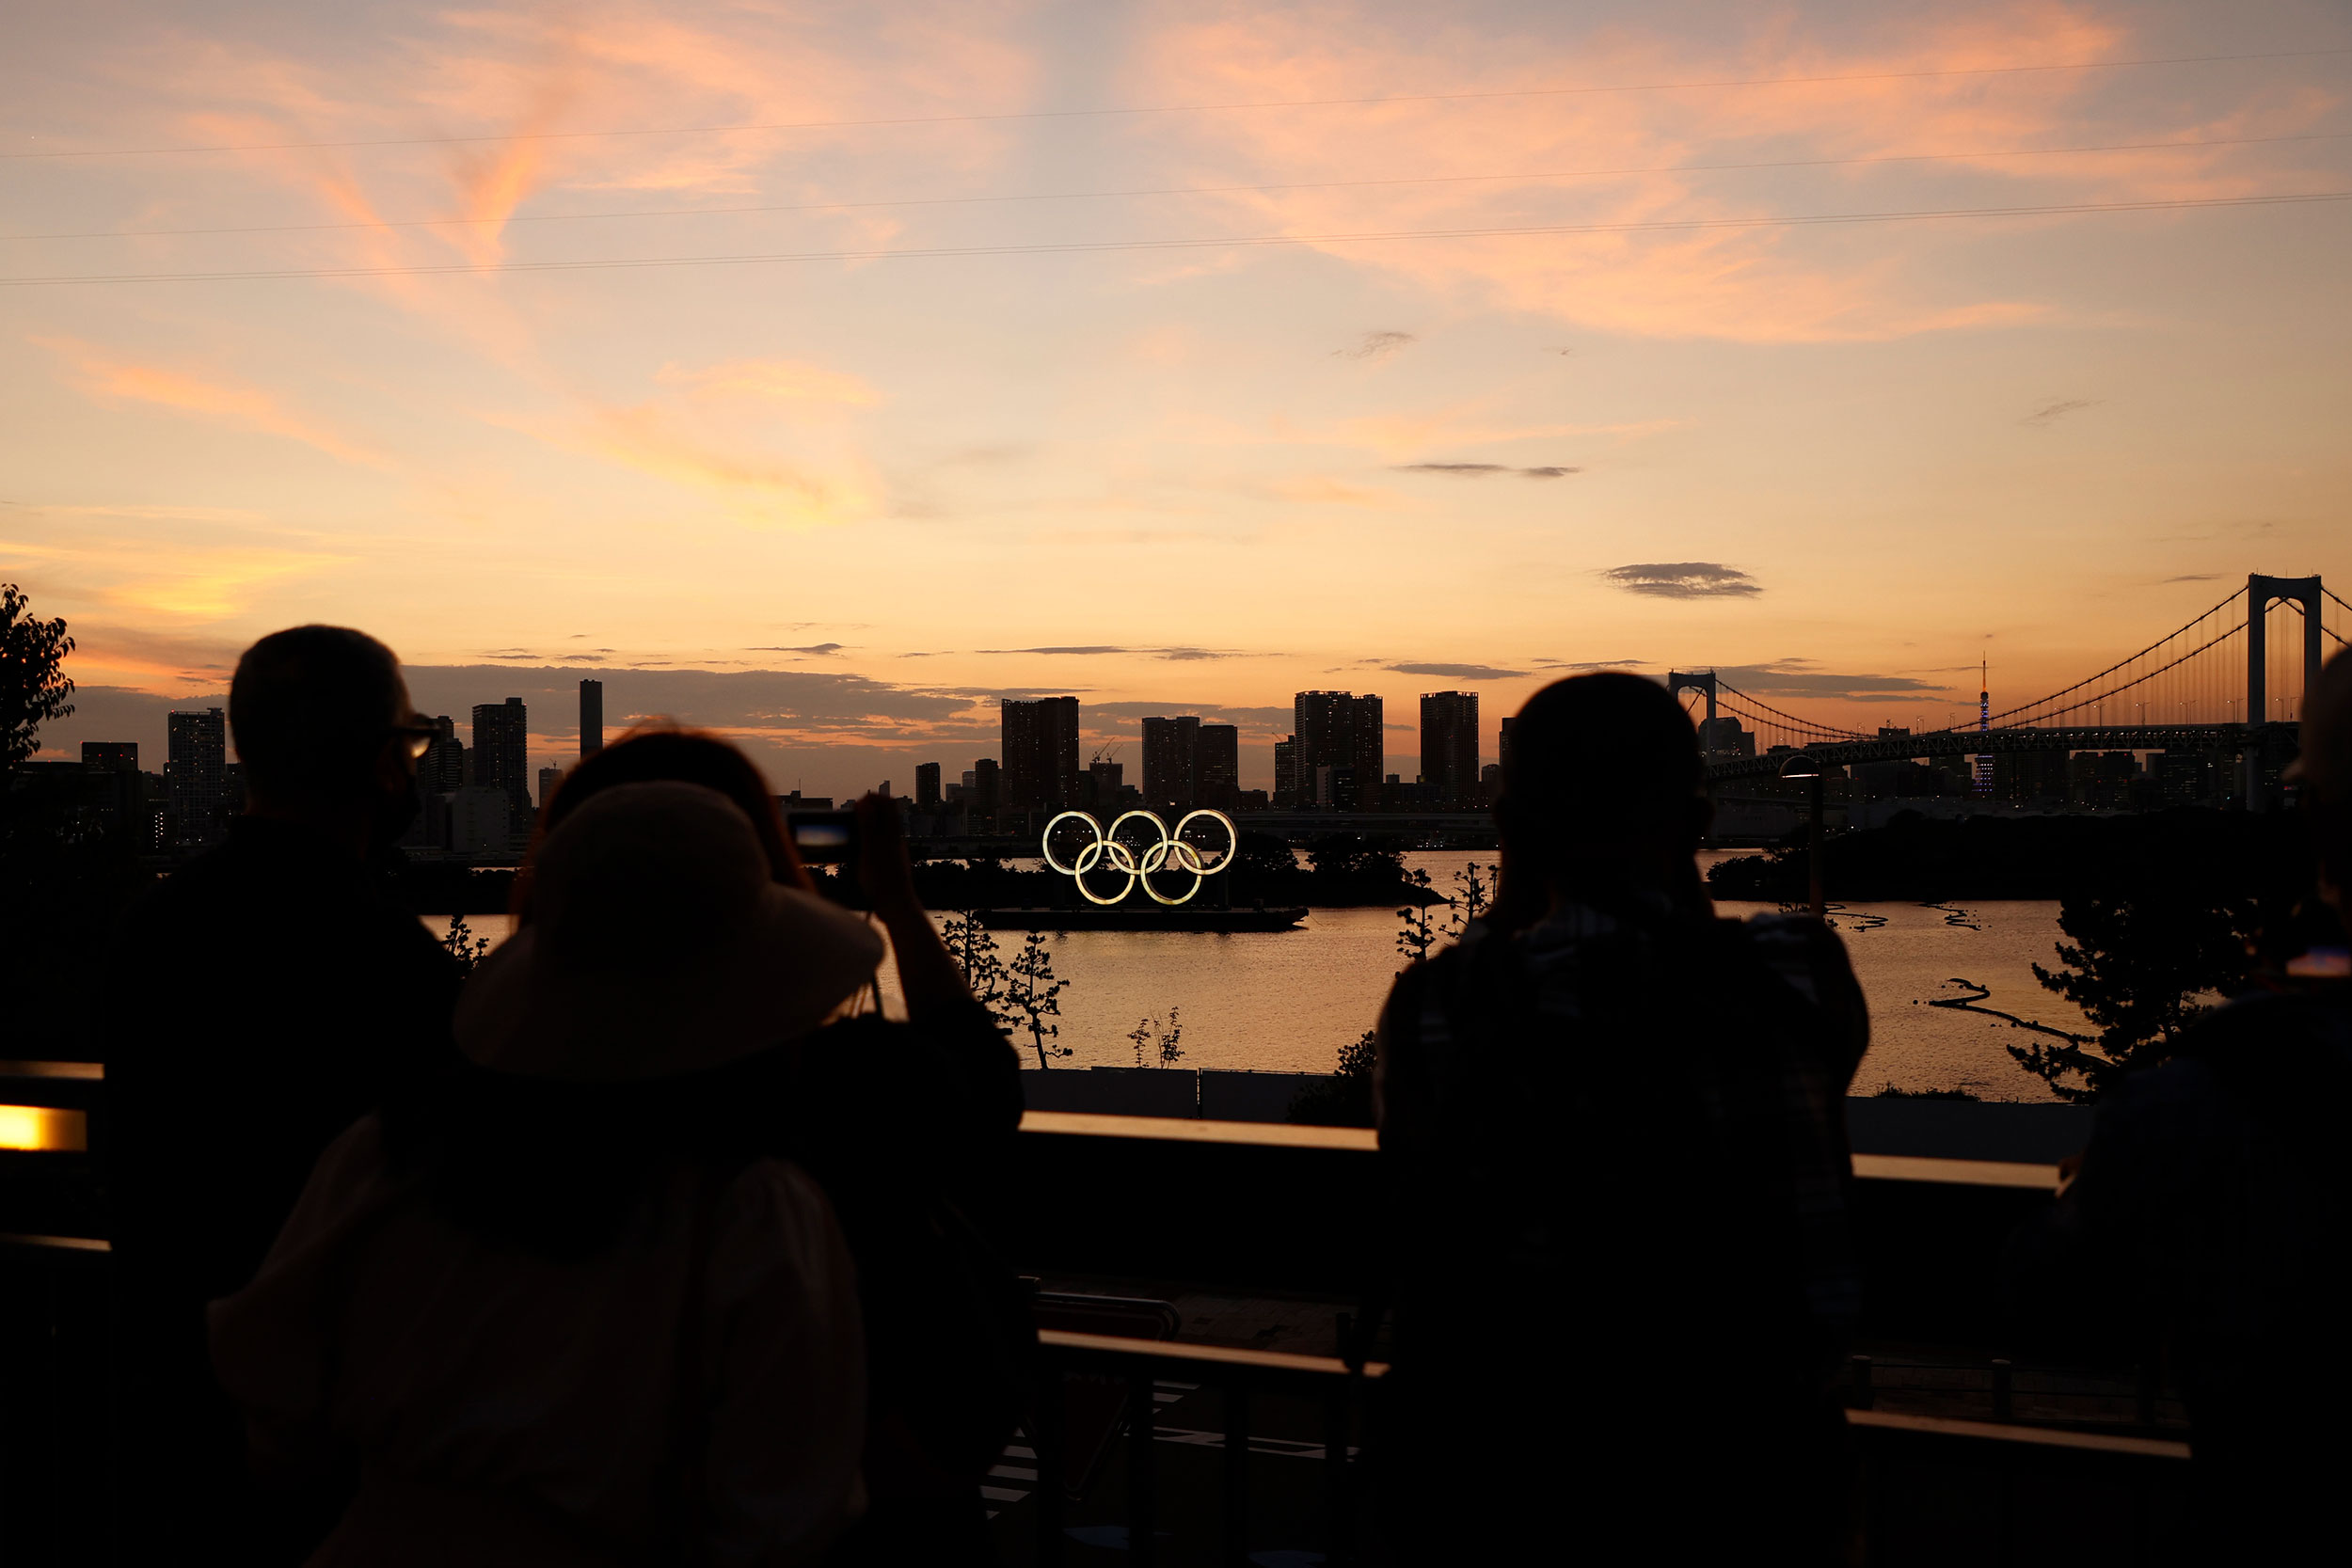 People take photos of the Olympic rings displayed at Odaiba Marine Park in Tokyo on July 19.